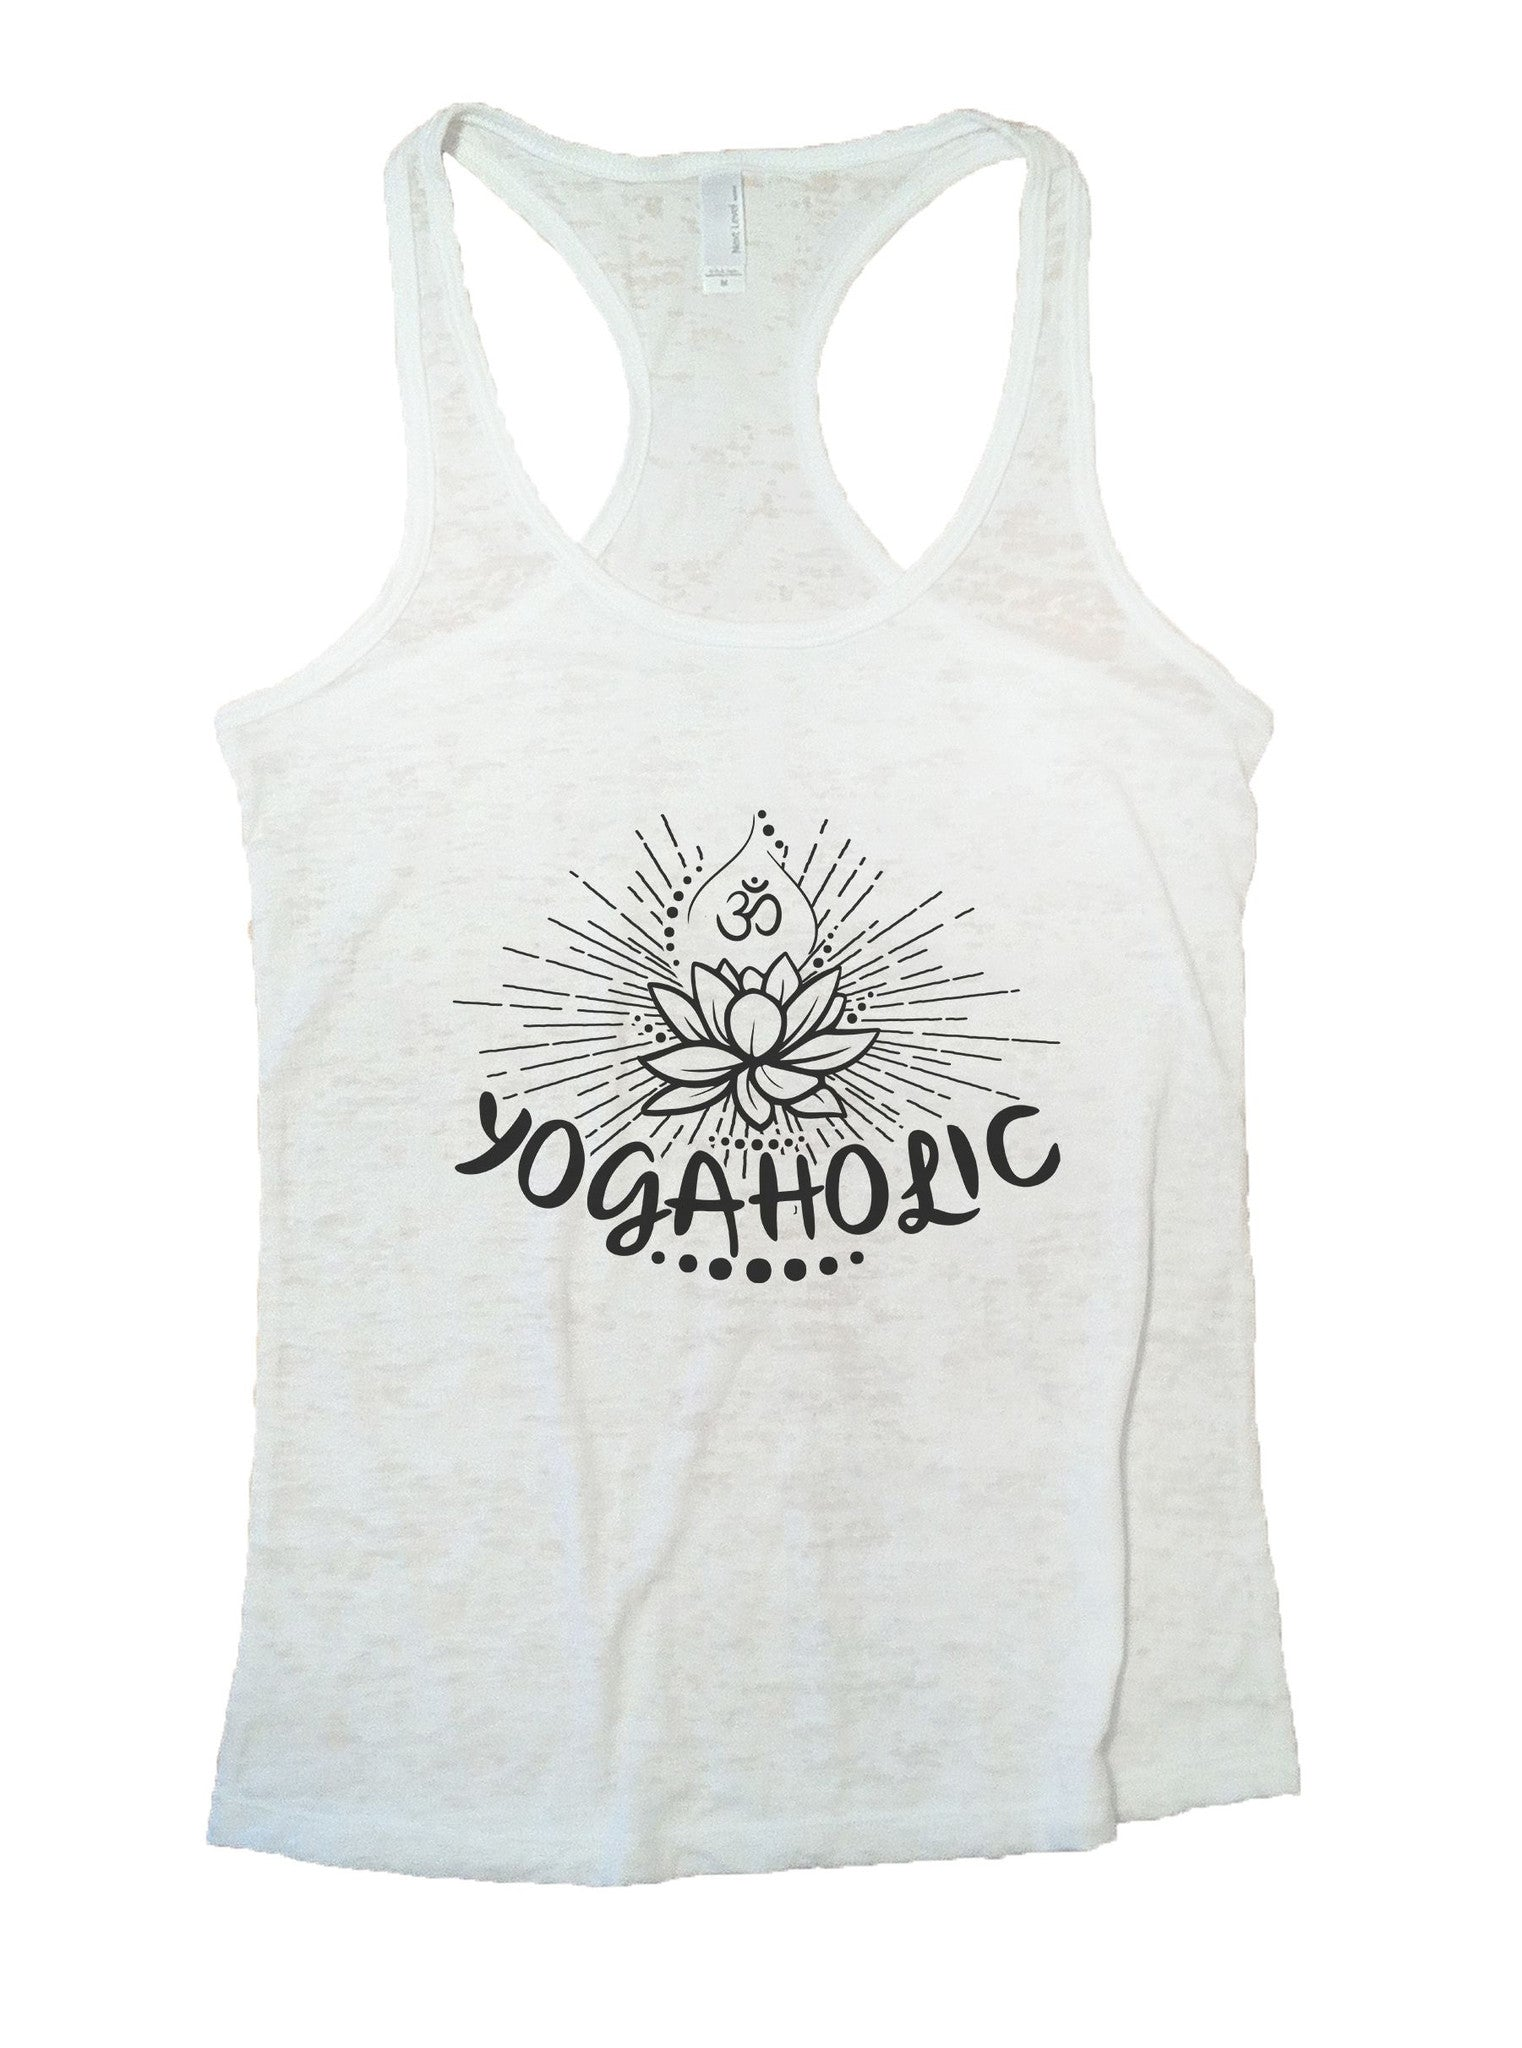 Yogaholic Burnout Tank Top By BurnoutTankTops.com - 1017 - Funny Shirts Tank Tops Burnouts and Triblends  - 6